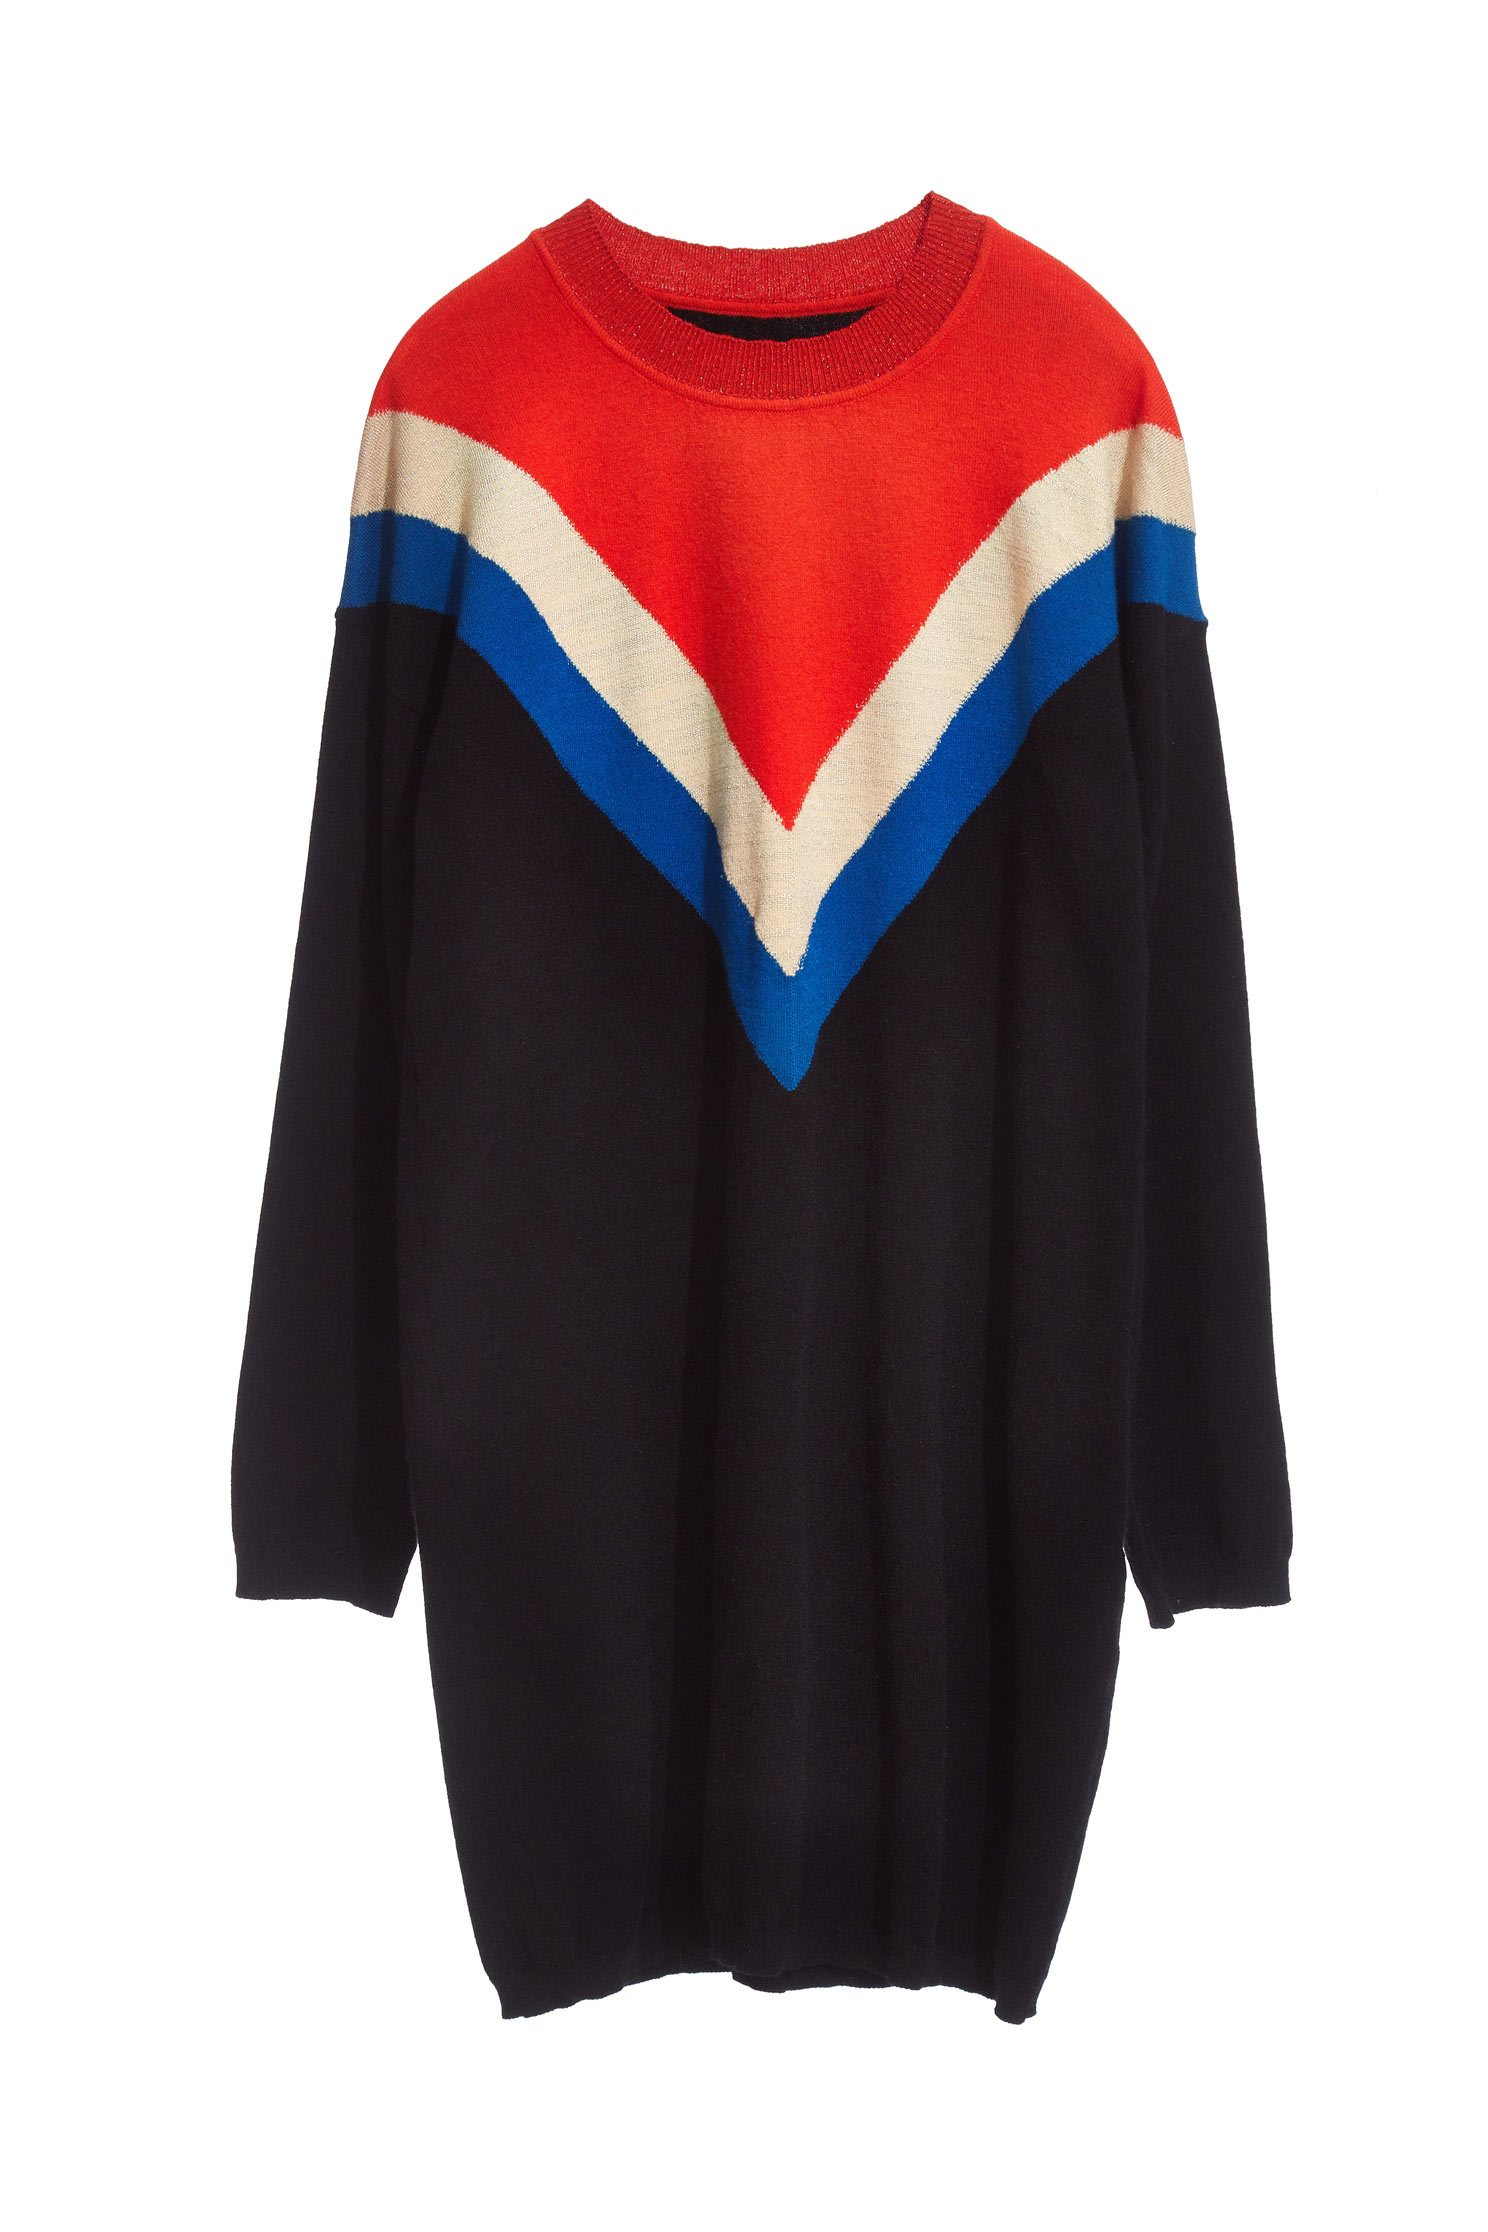 Casual Contrast Color long sleeve tops